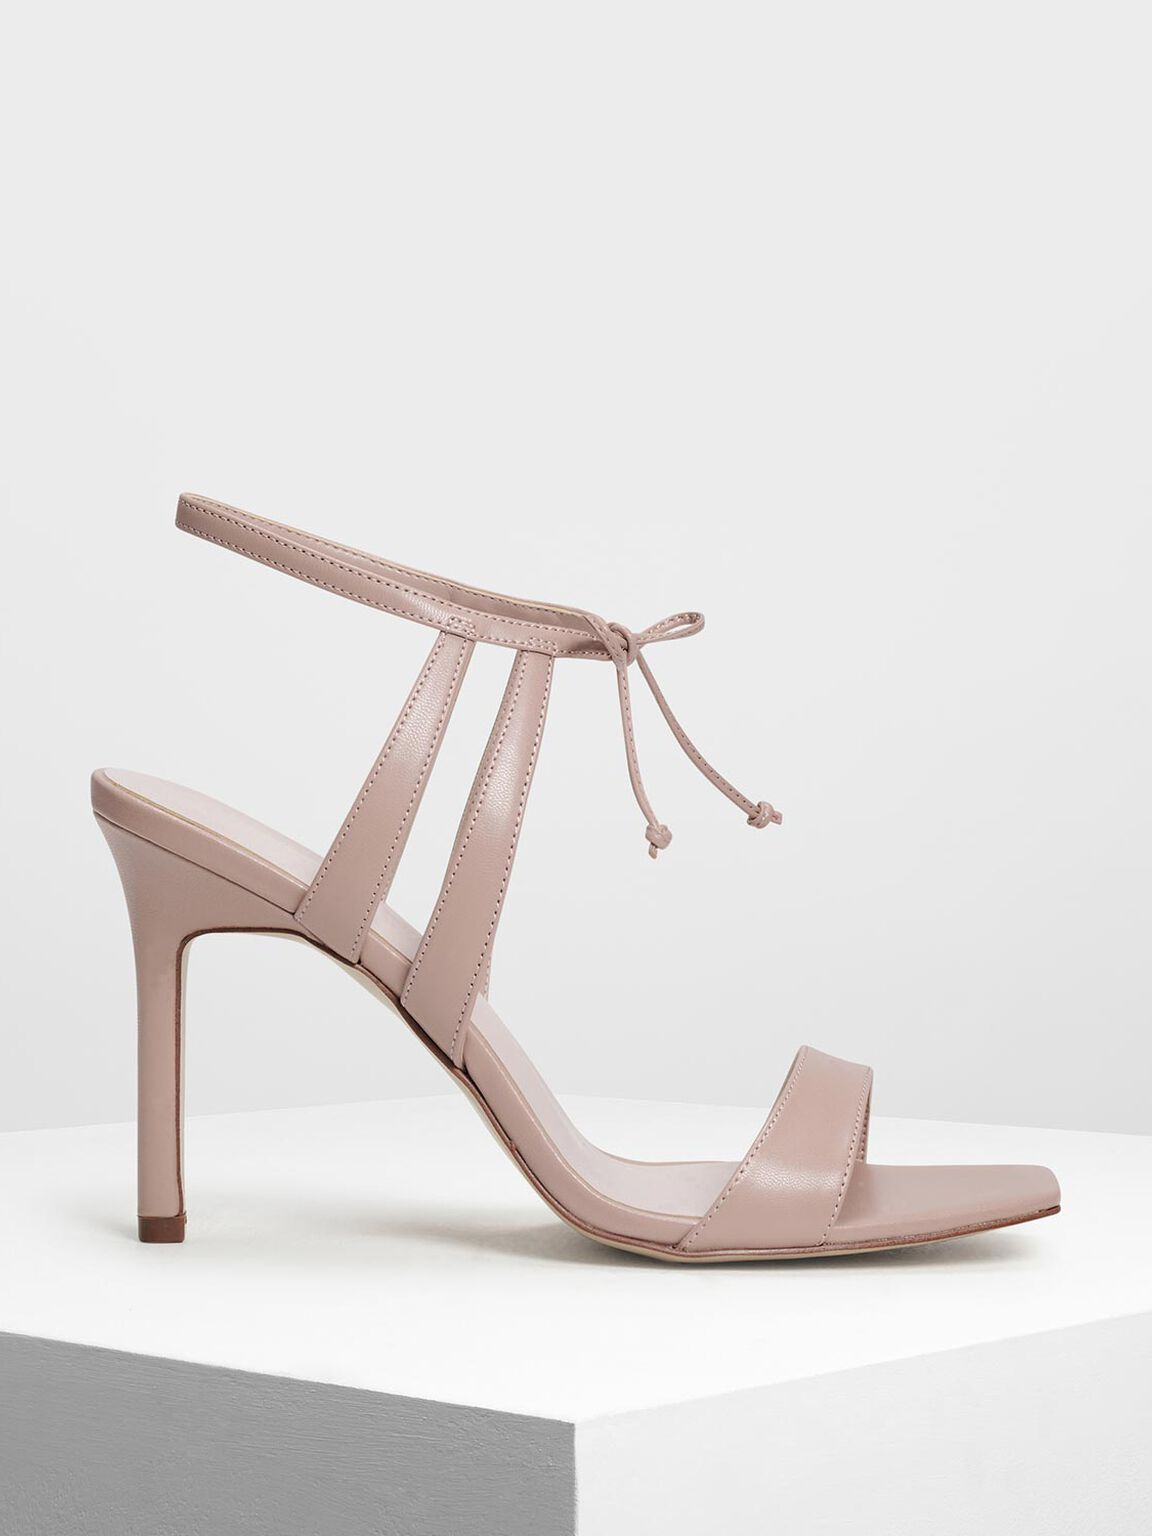 Strappy Heeled Sandals, Nude, hi-res